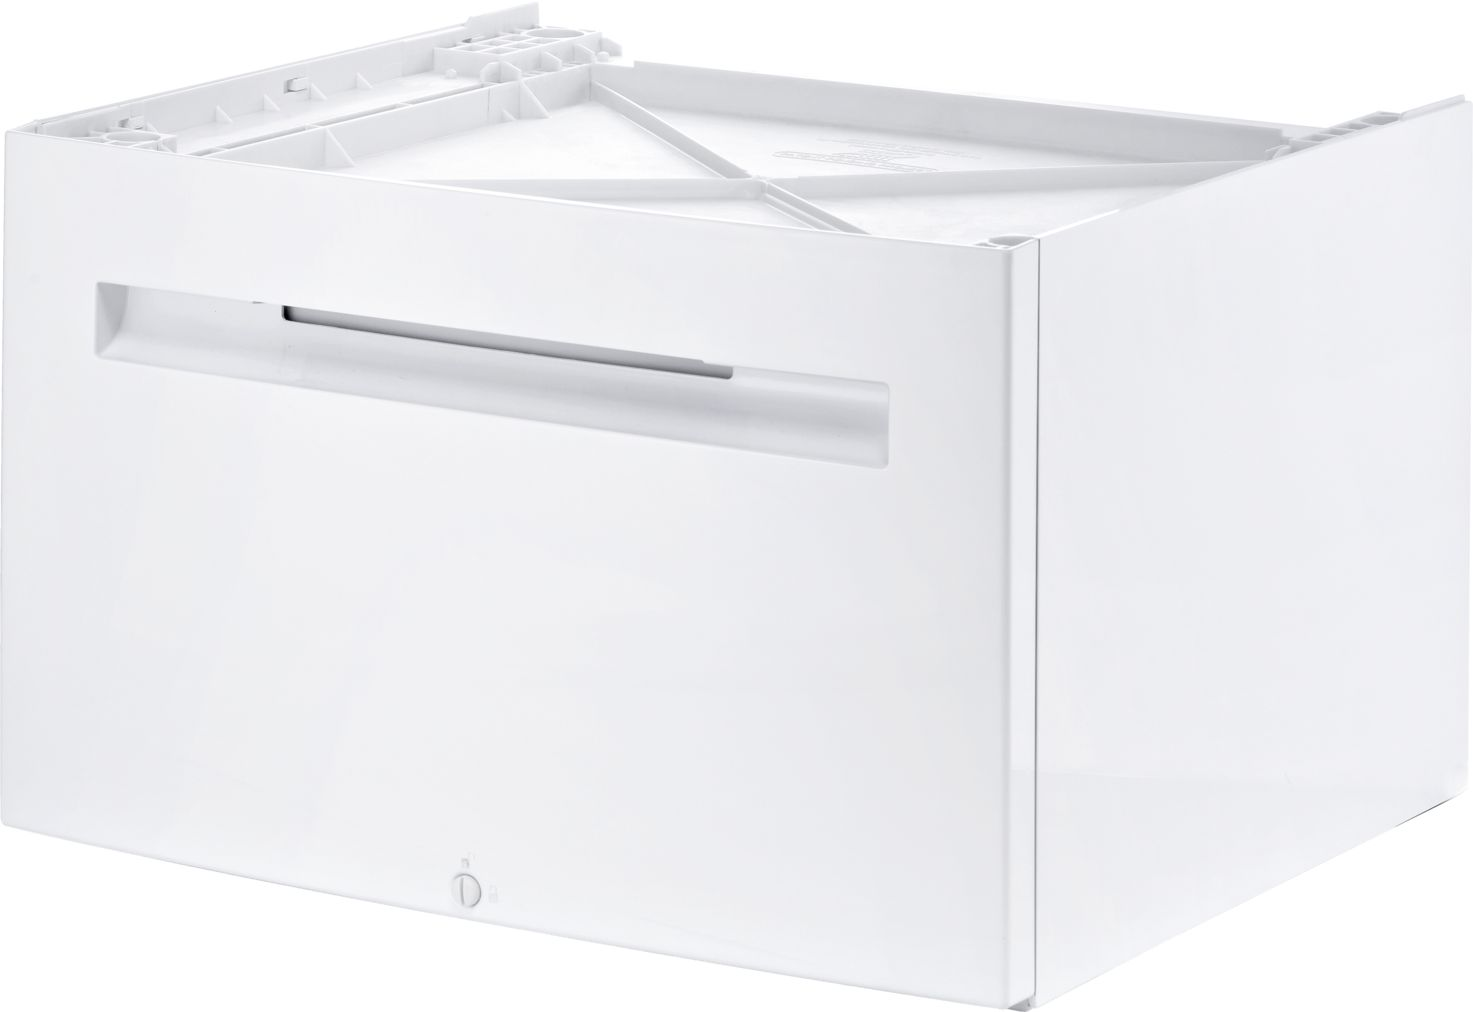 "Model: WMZ20500 | Bosch WMZ20500Pedestal with Pull-Out Drawer24"" Compact Dryer"